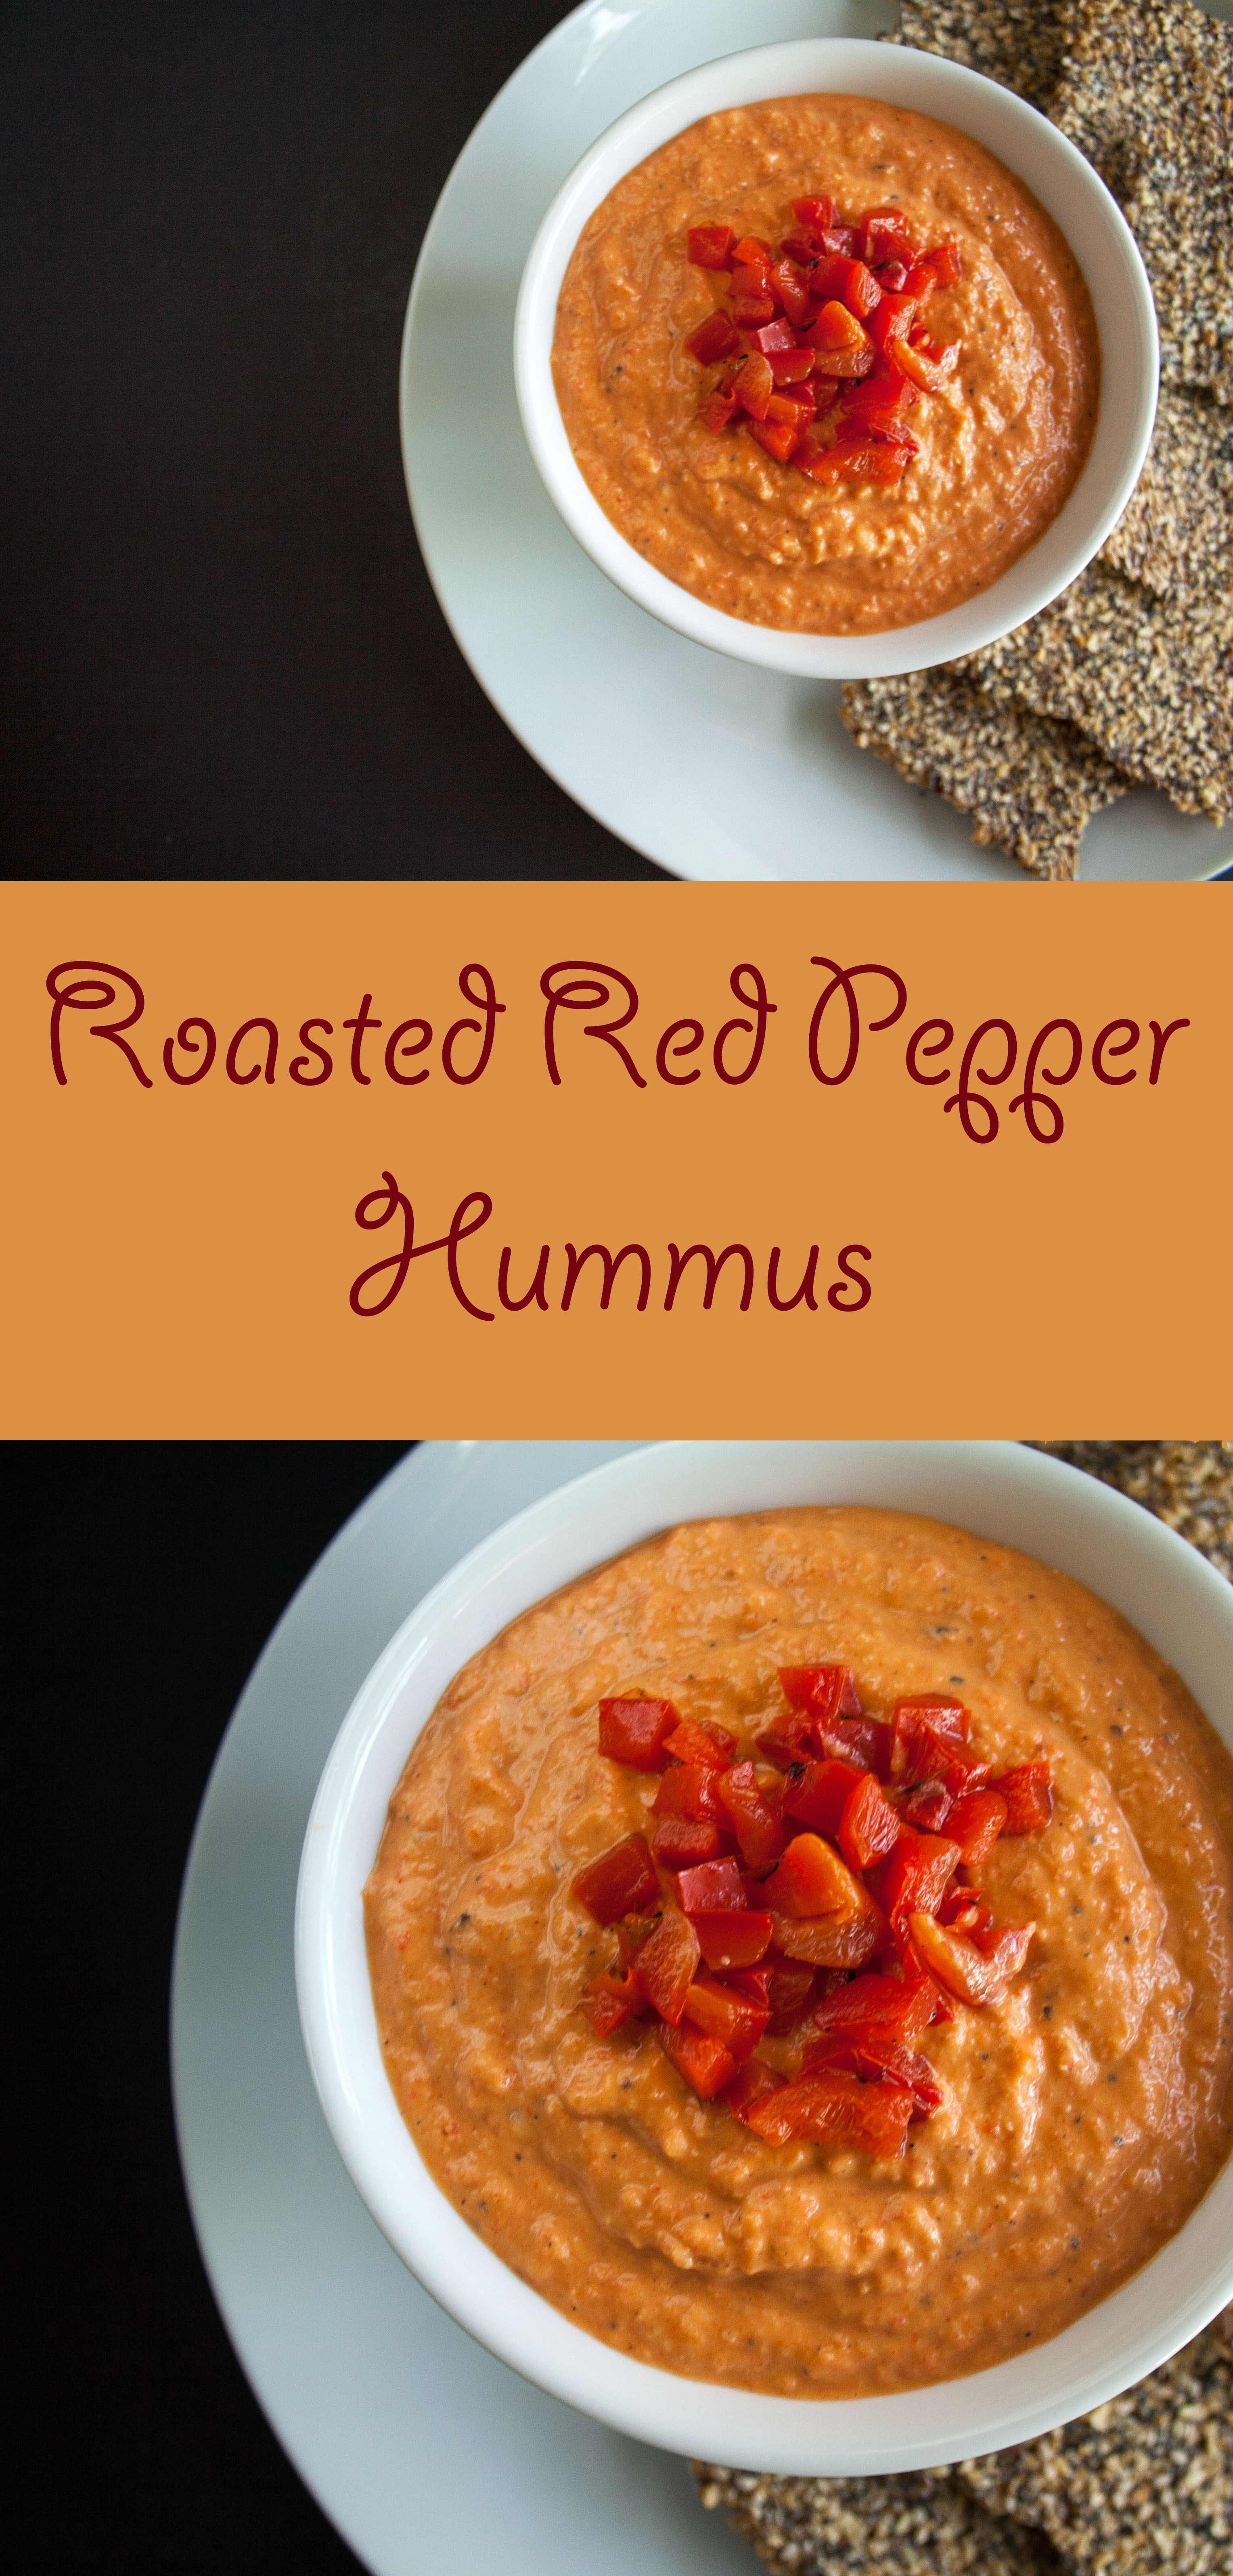 Roasted Red Pepper Hummus collage photo with text.